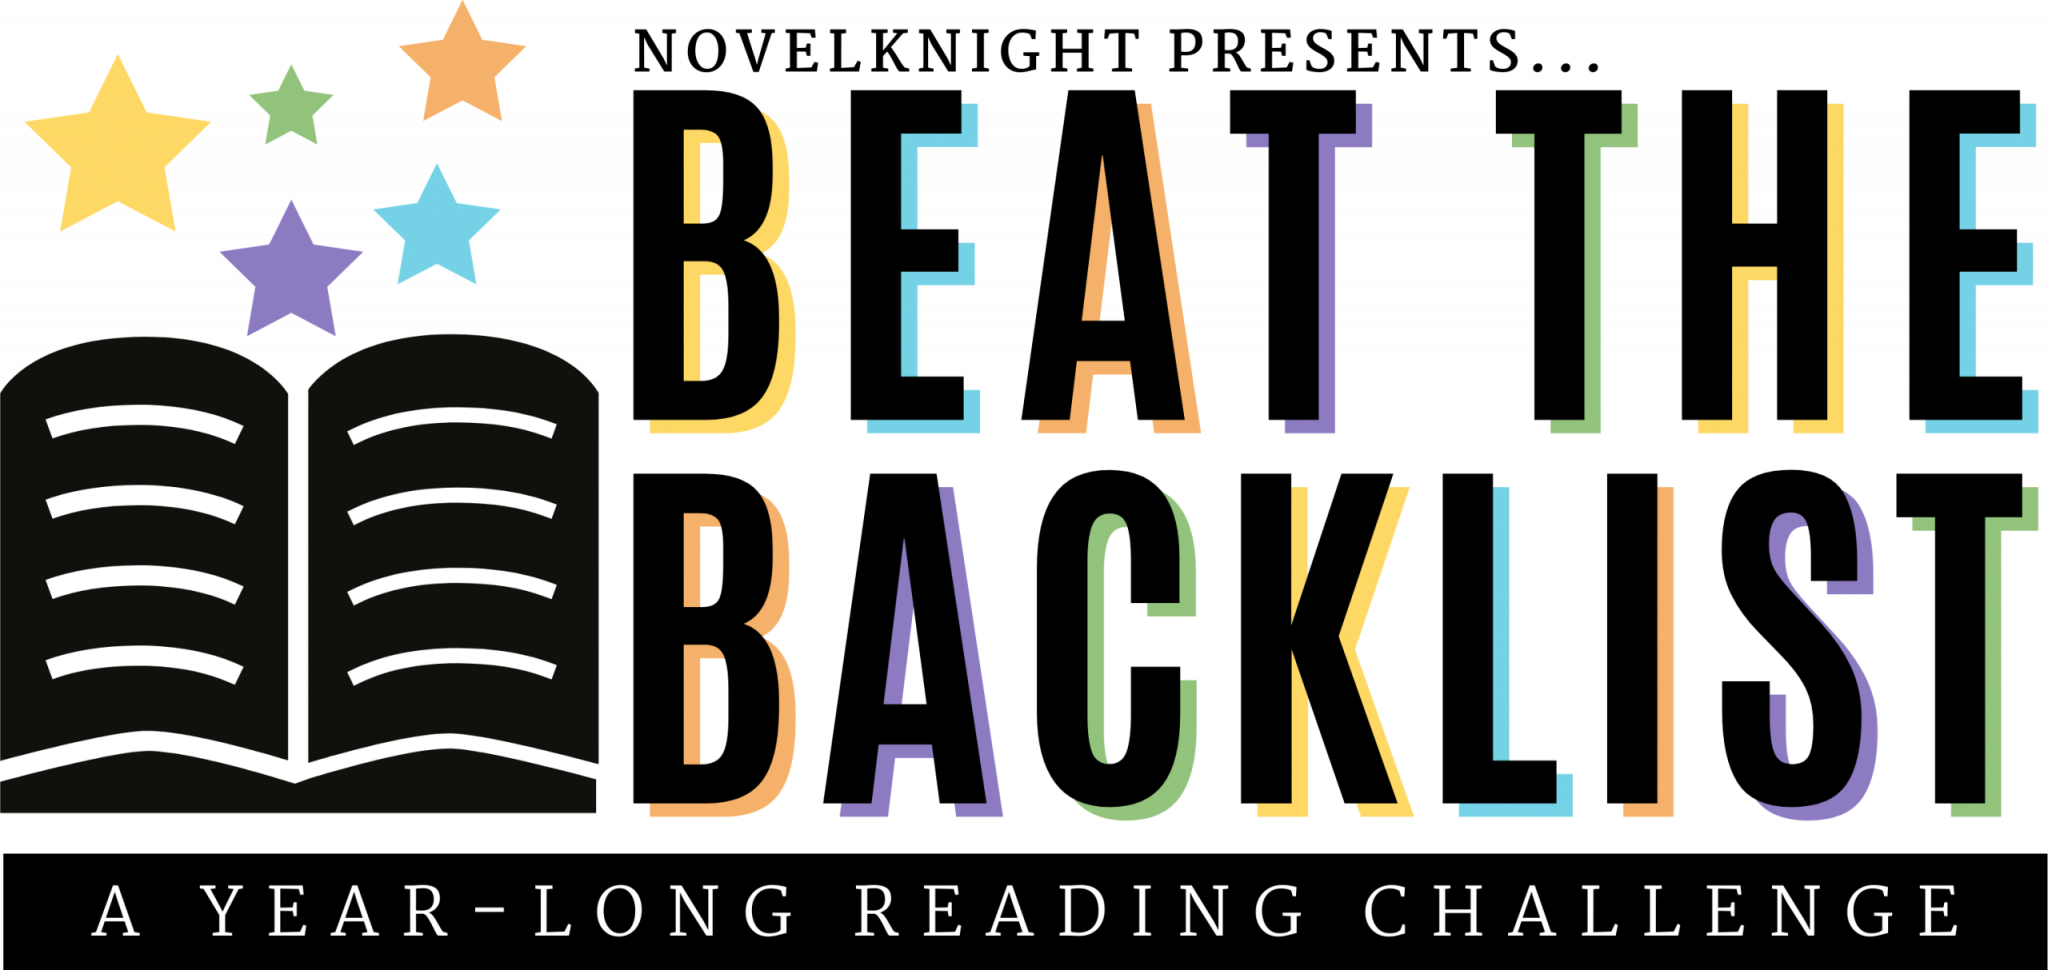 Beat the Backlist (2020)